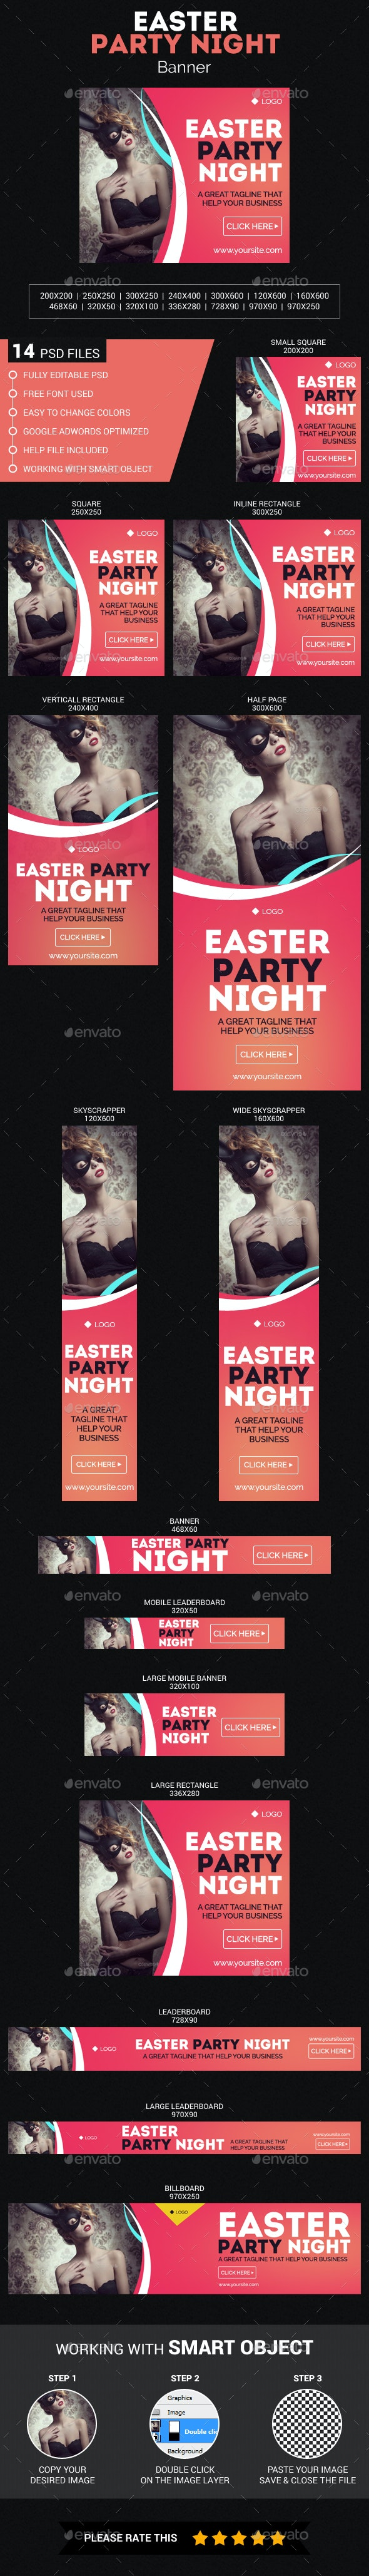 Easter Party Night - Banners & Ads Web Elements